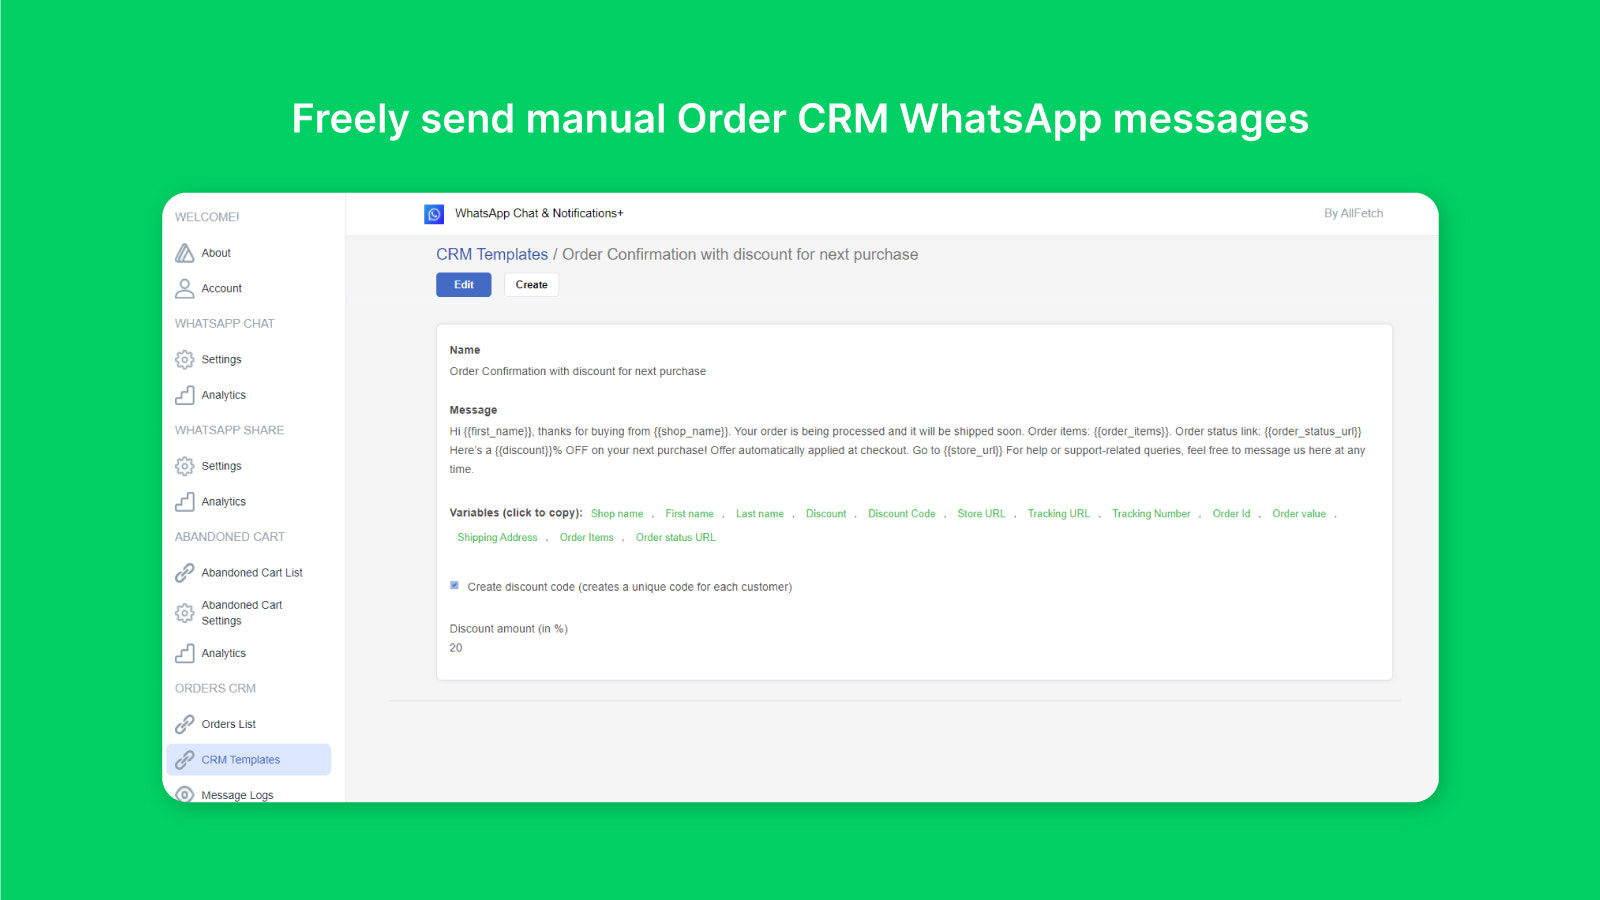 Freely send manual Order CRM Whatsapp messages